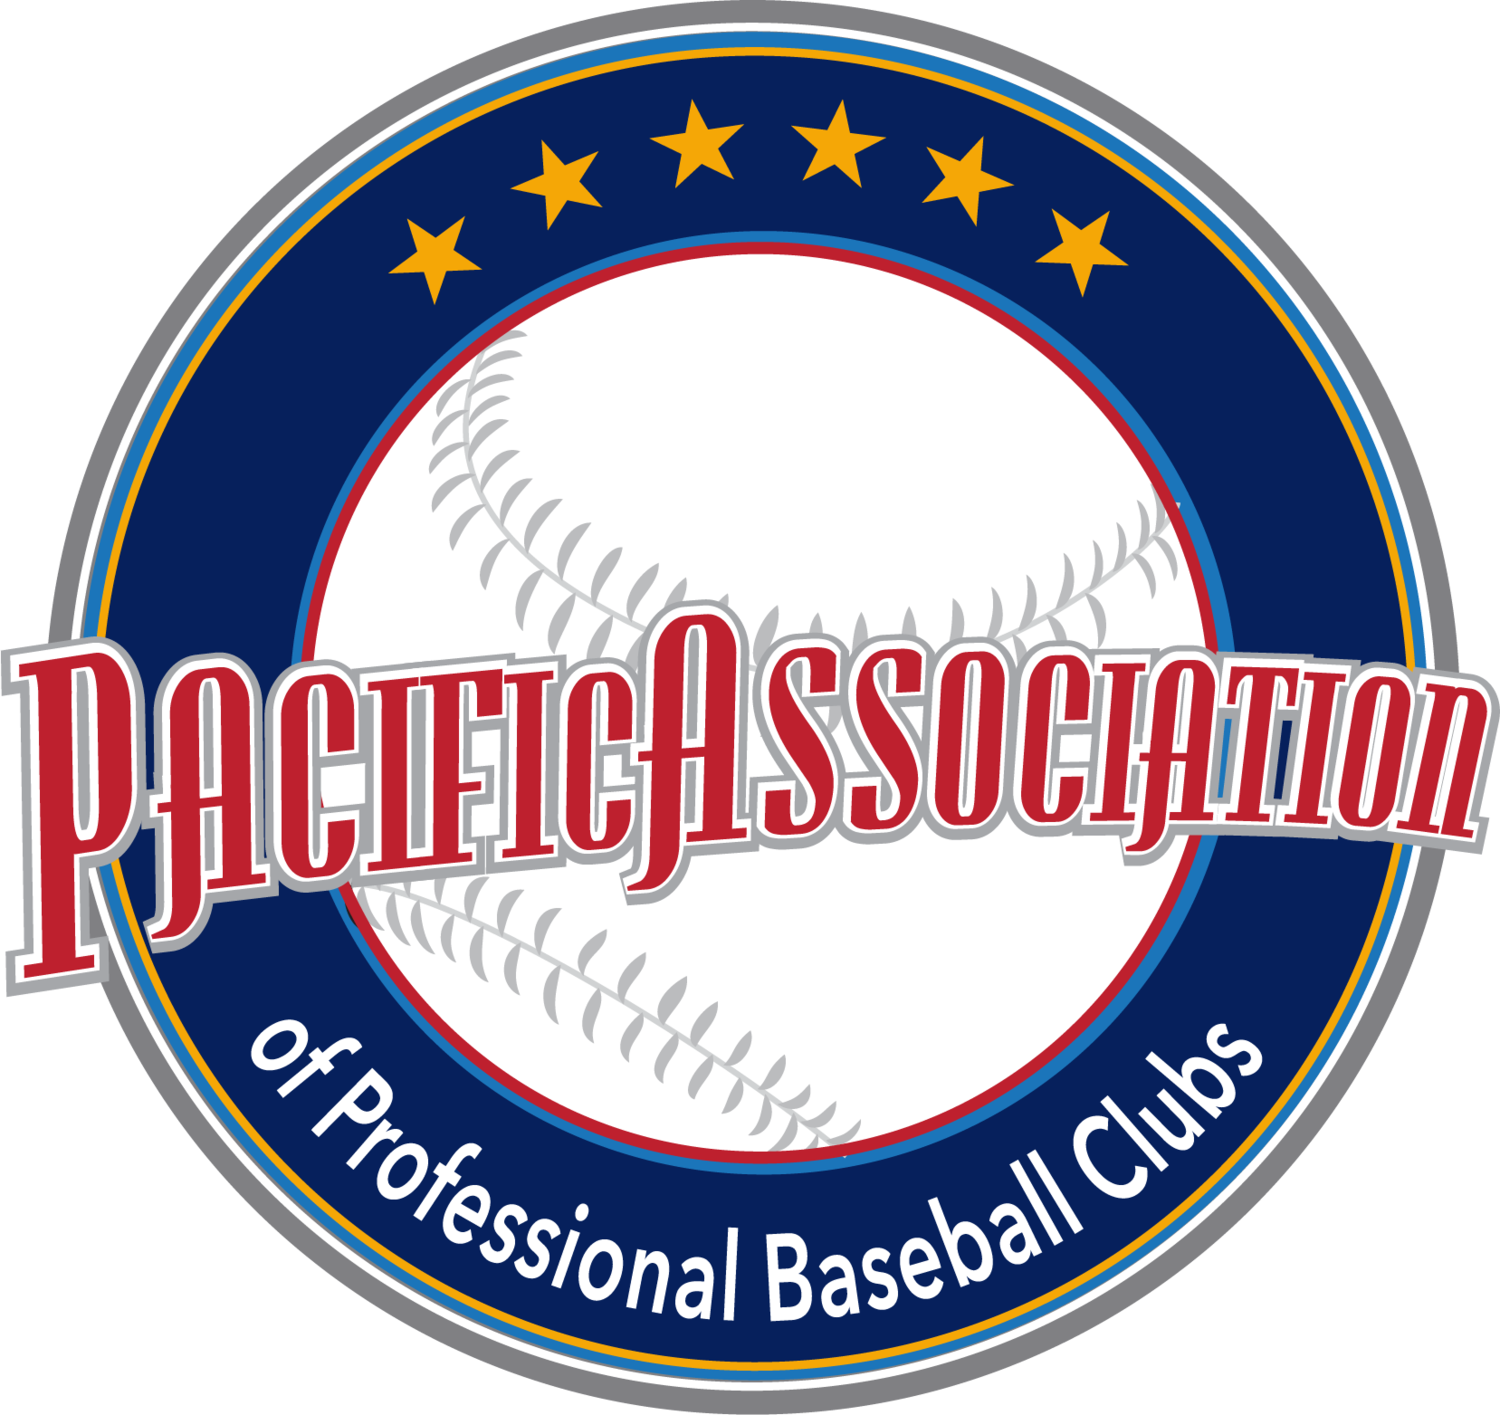 Pacific Association of Professional Baseball Clubs